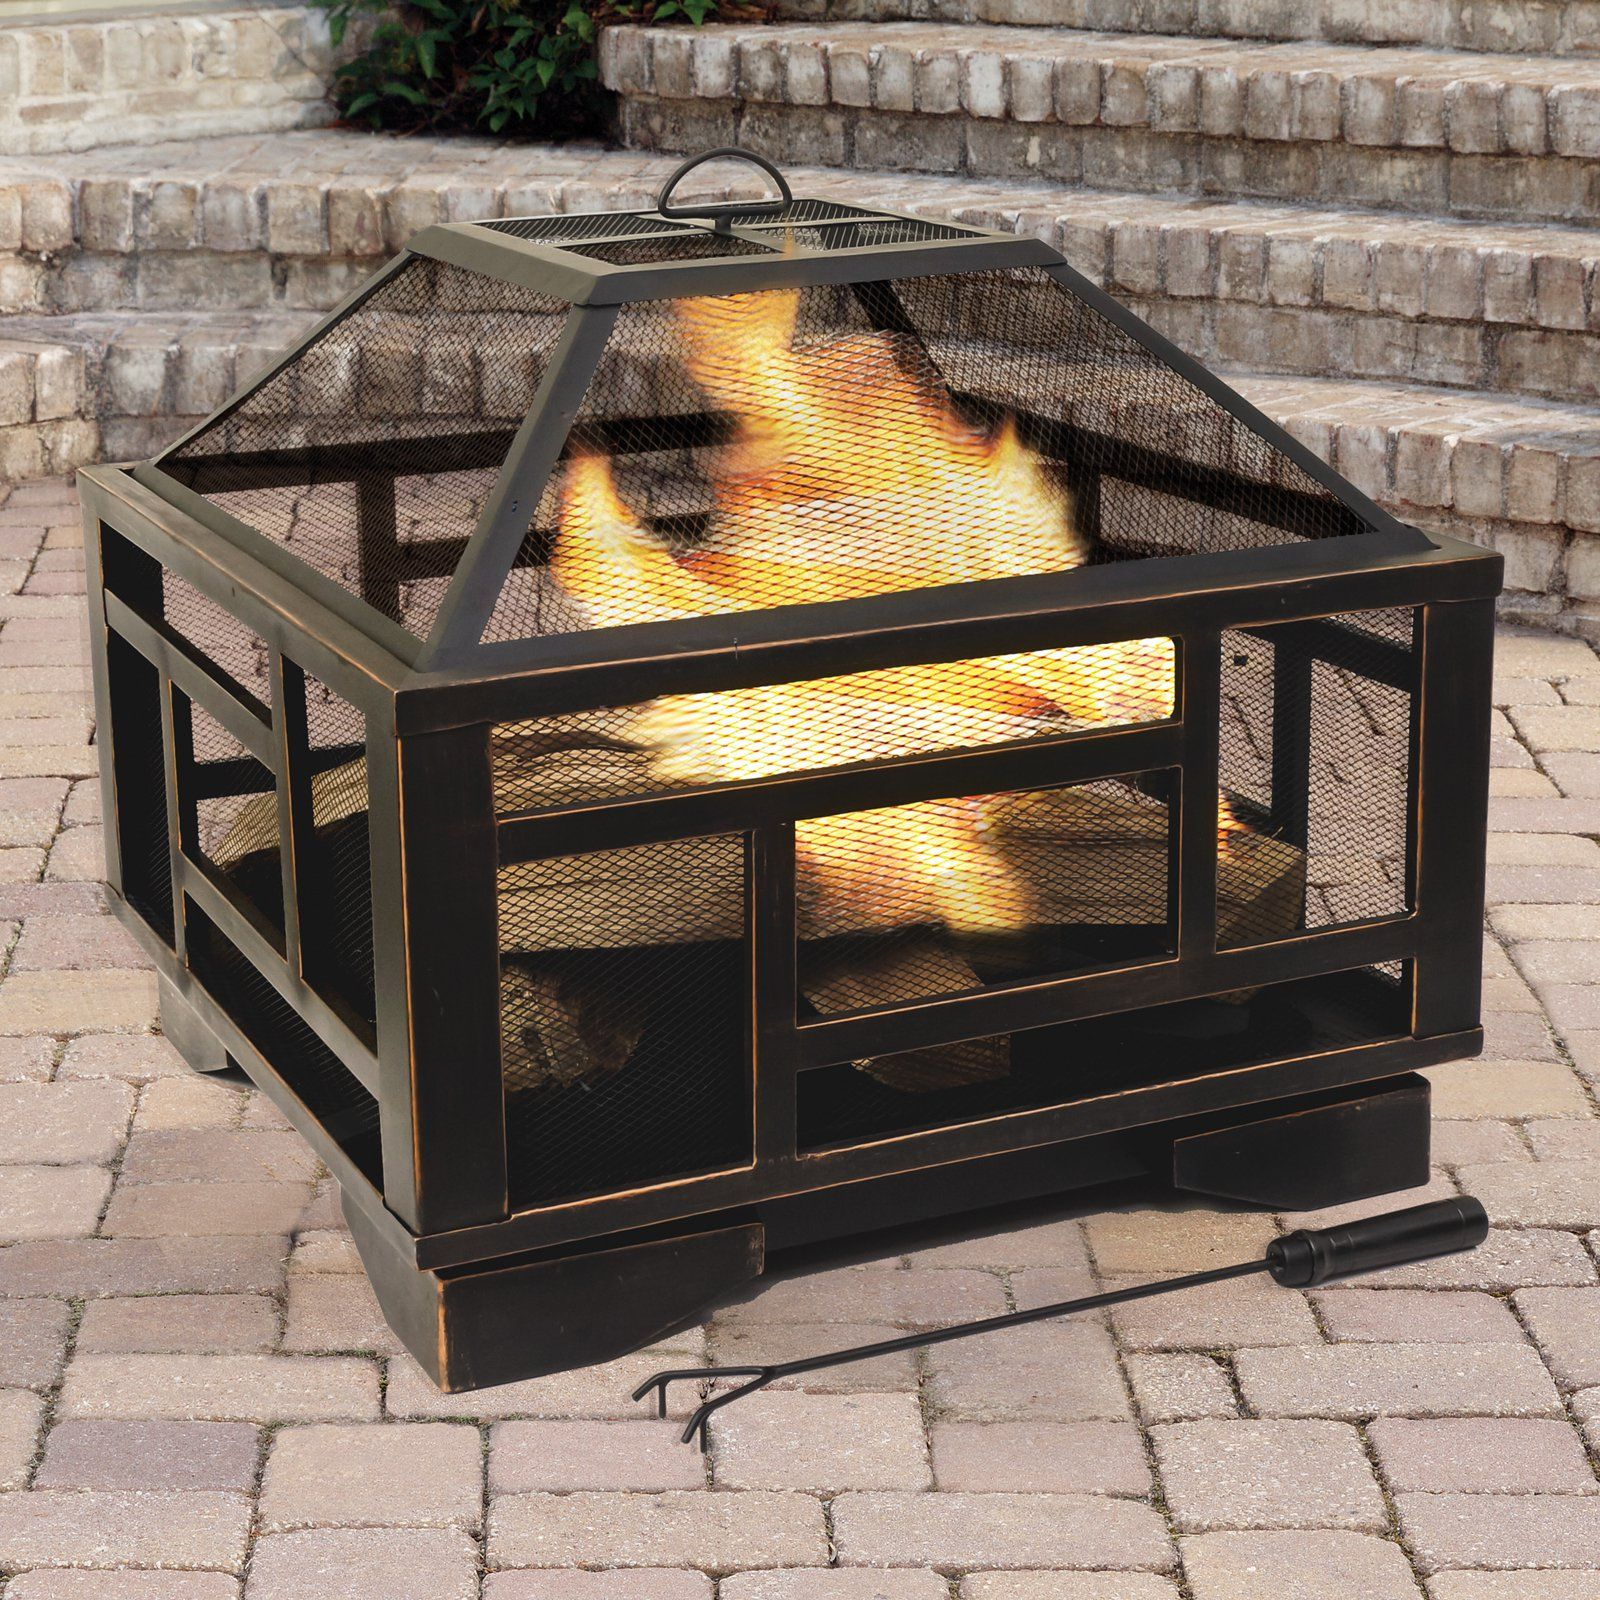 Pleasant Hearth Solus 26 In Fire Pit With Spark Screen Wood Burning Fire Pit Gazebo With Fire Pit Fire Pit Furniture